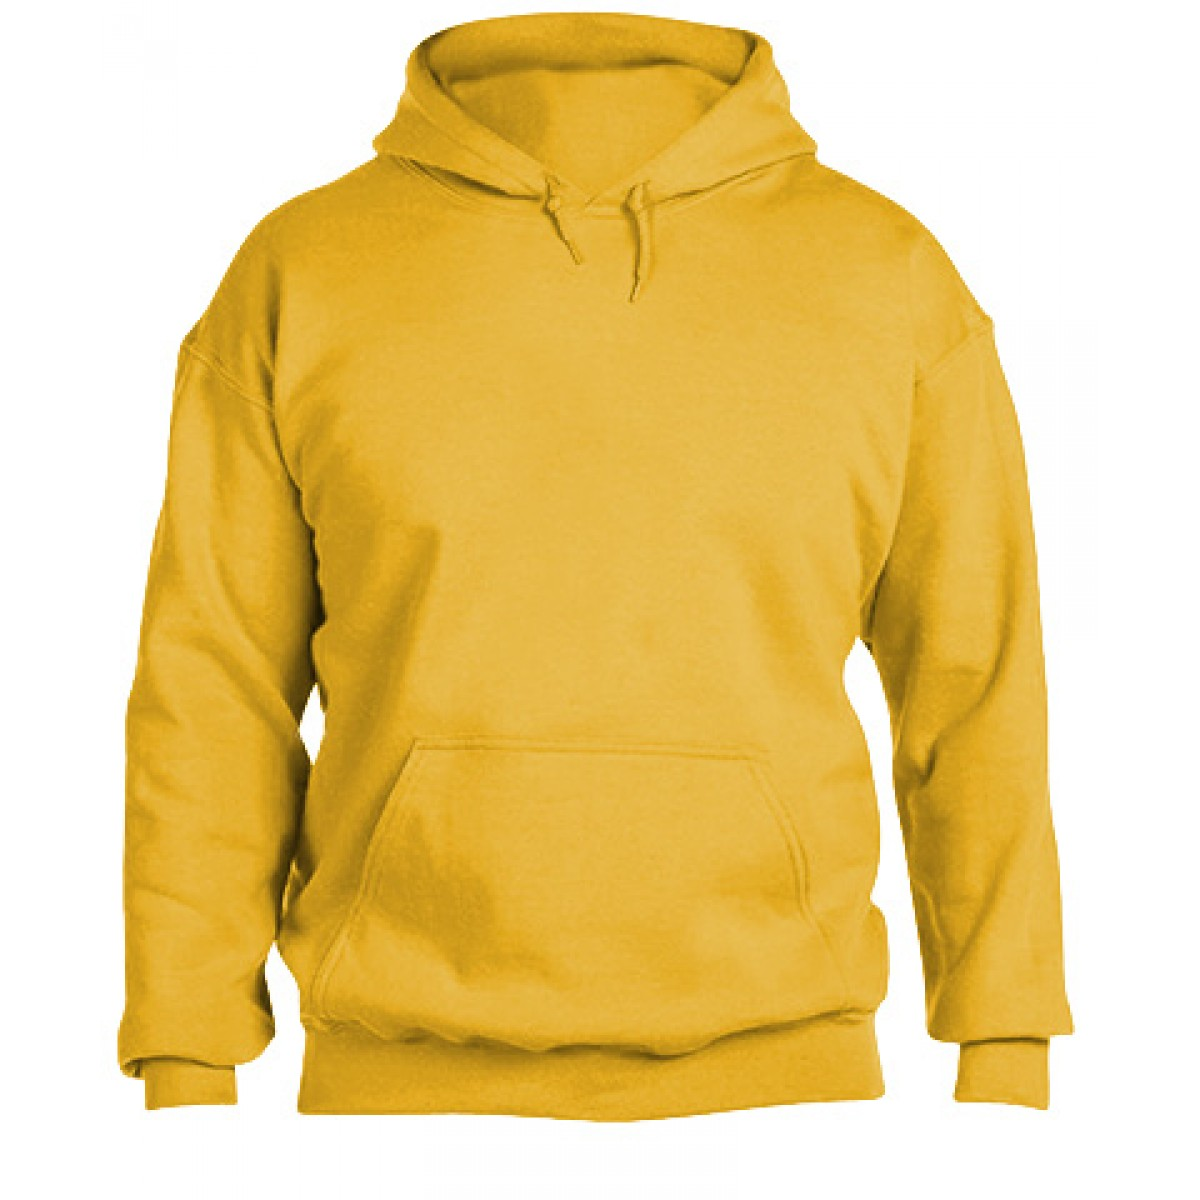 Hooded Sweatshirt 50/50 Heavy Blend -Gold-L